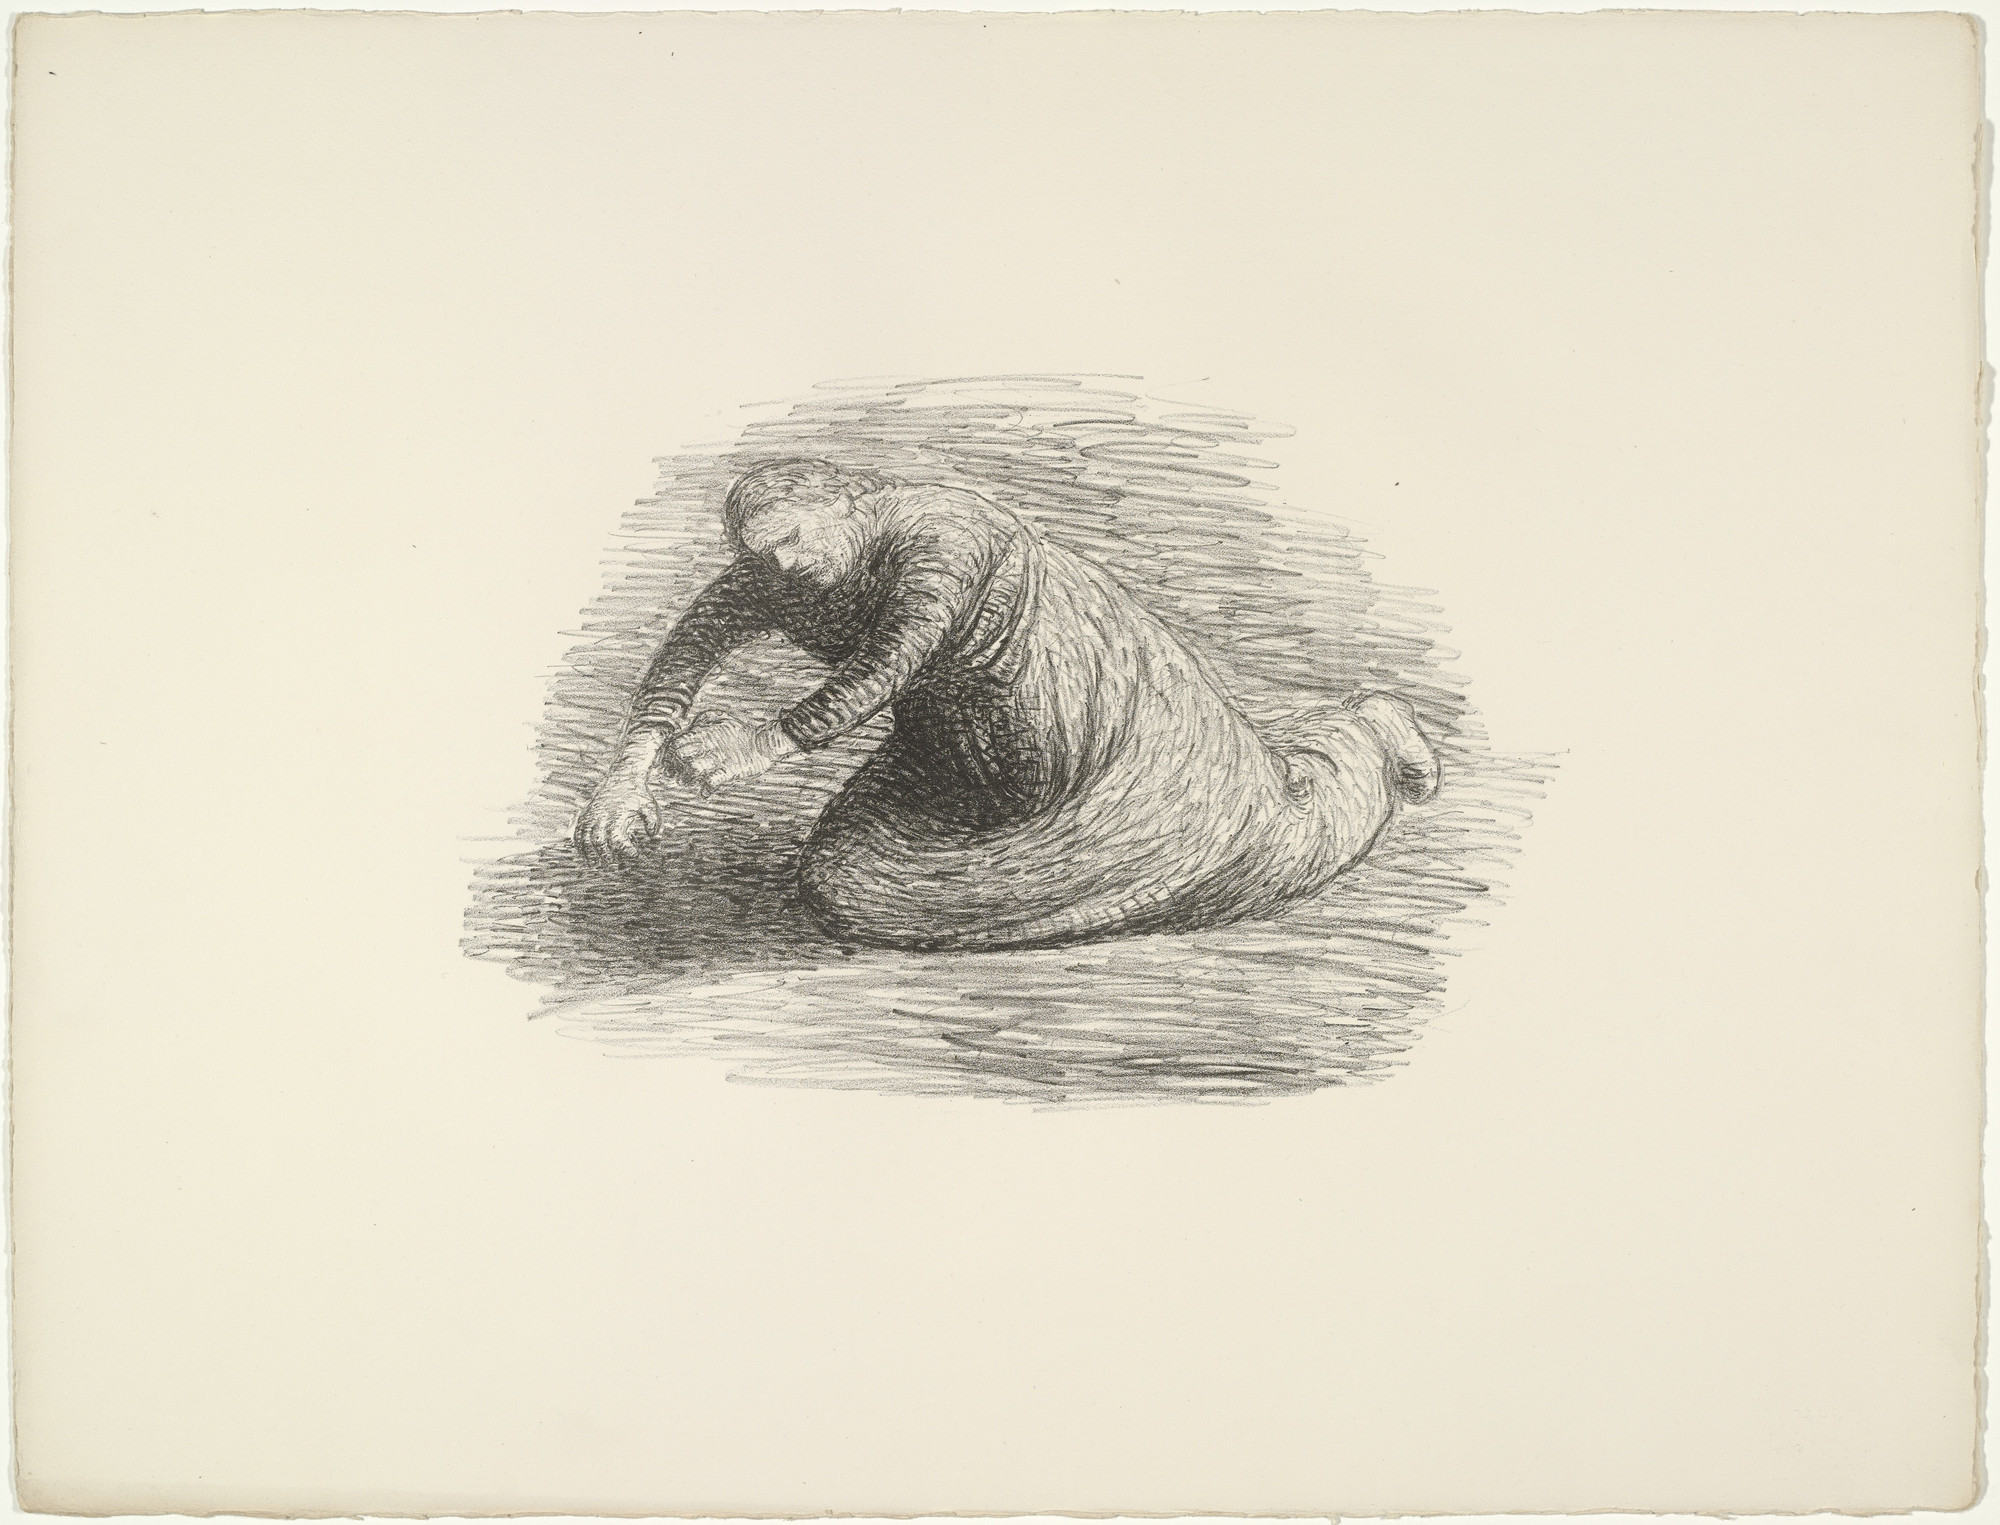 Ernst Barlach. The Bloodstain 1 (Der Blutflecken 1) from The Dead Day (Der tote Tag). (1910-11, published 1912)